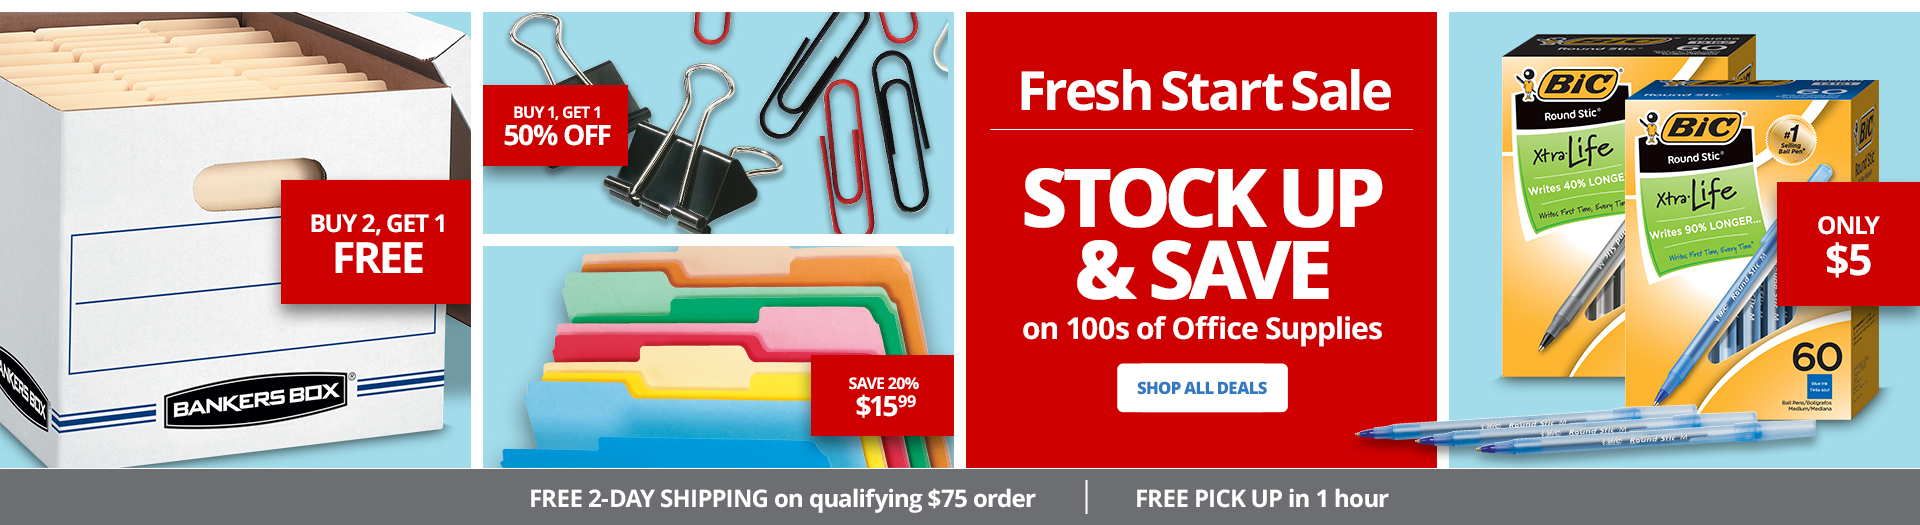 Stock up & Save - Office Supplies